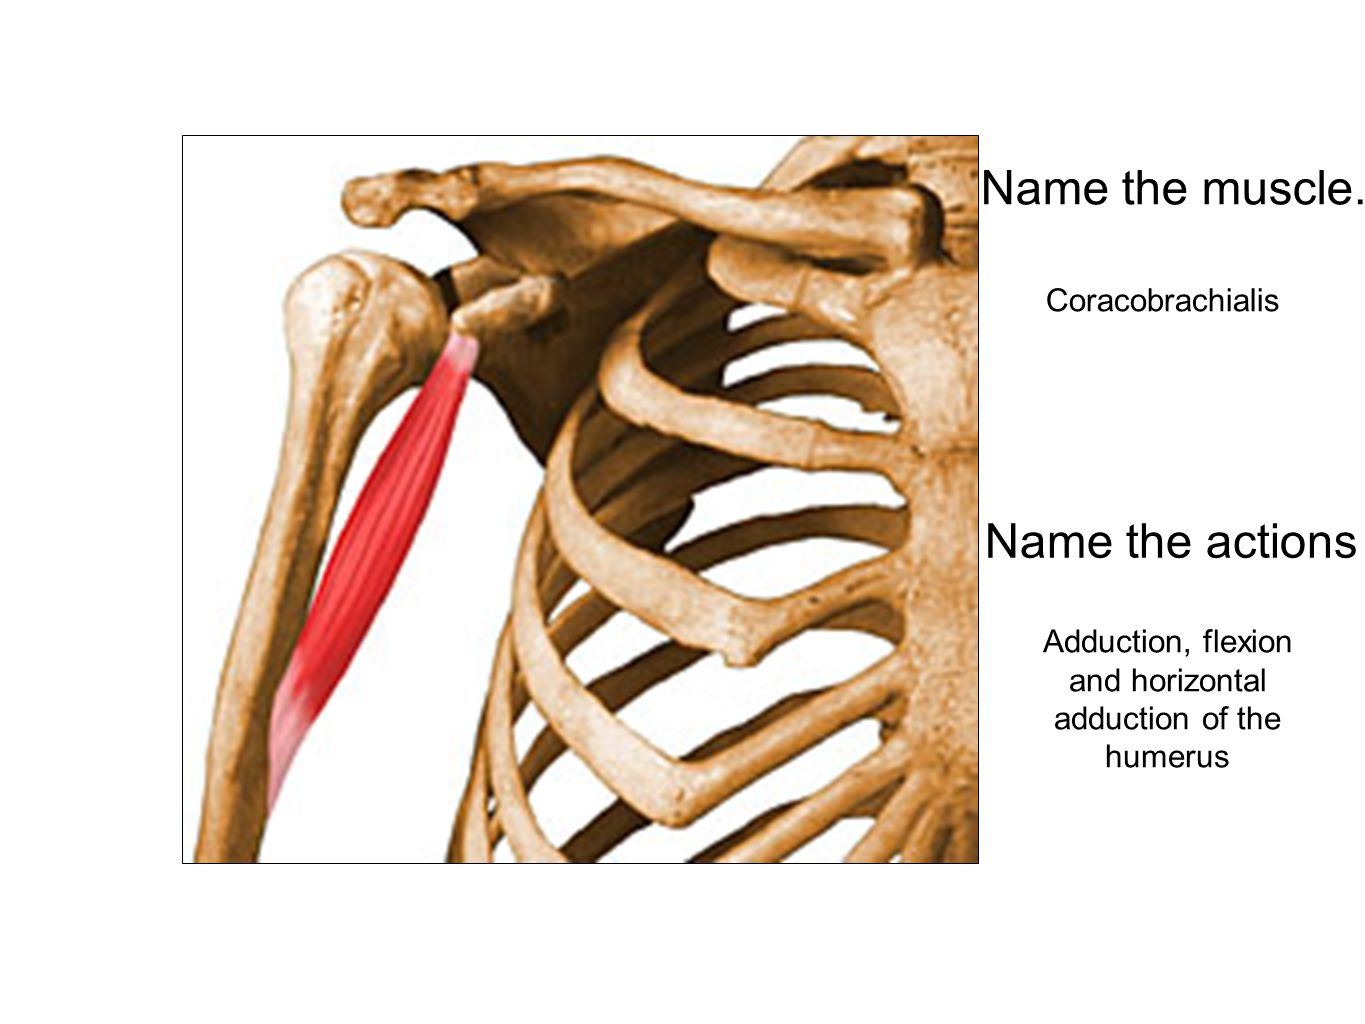 Adduction, flexion and horizontal adduction of the humerus